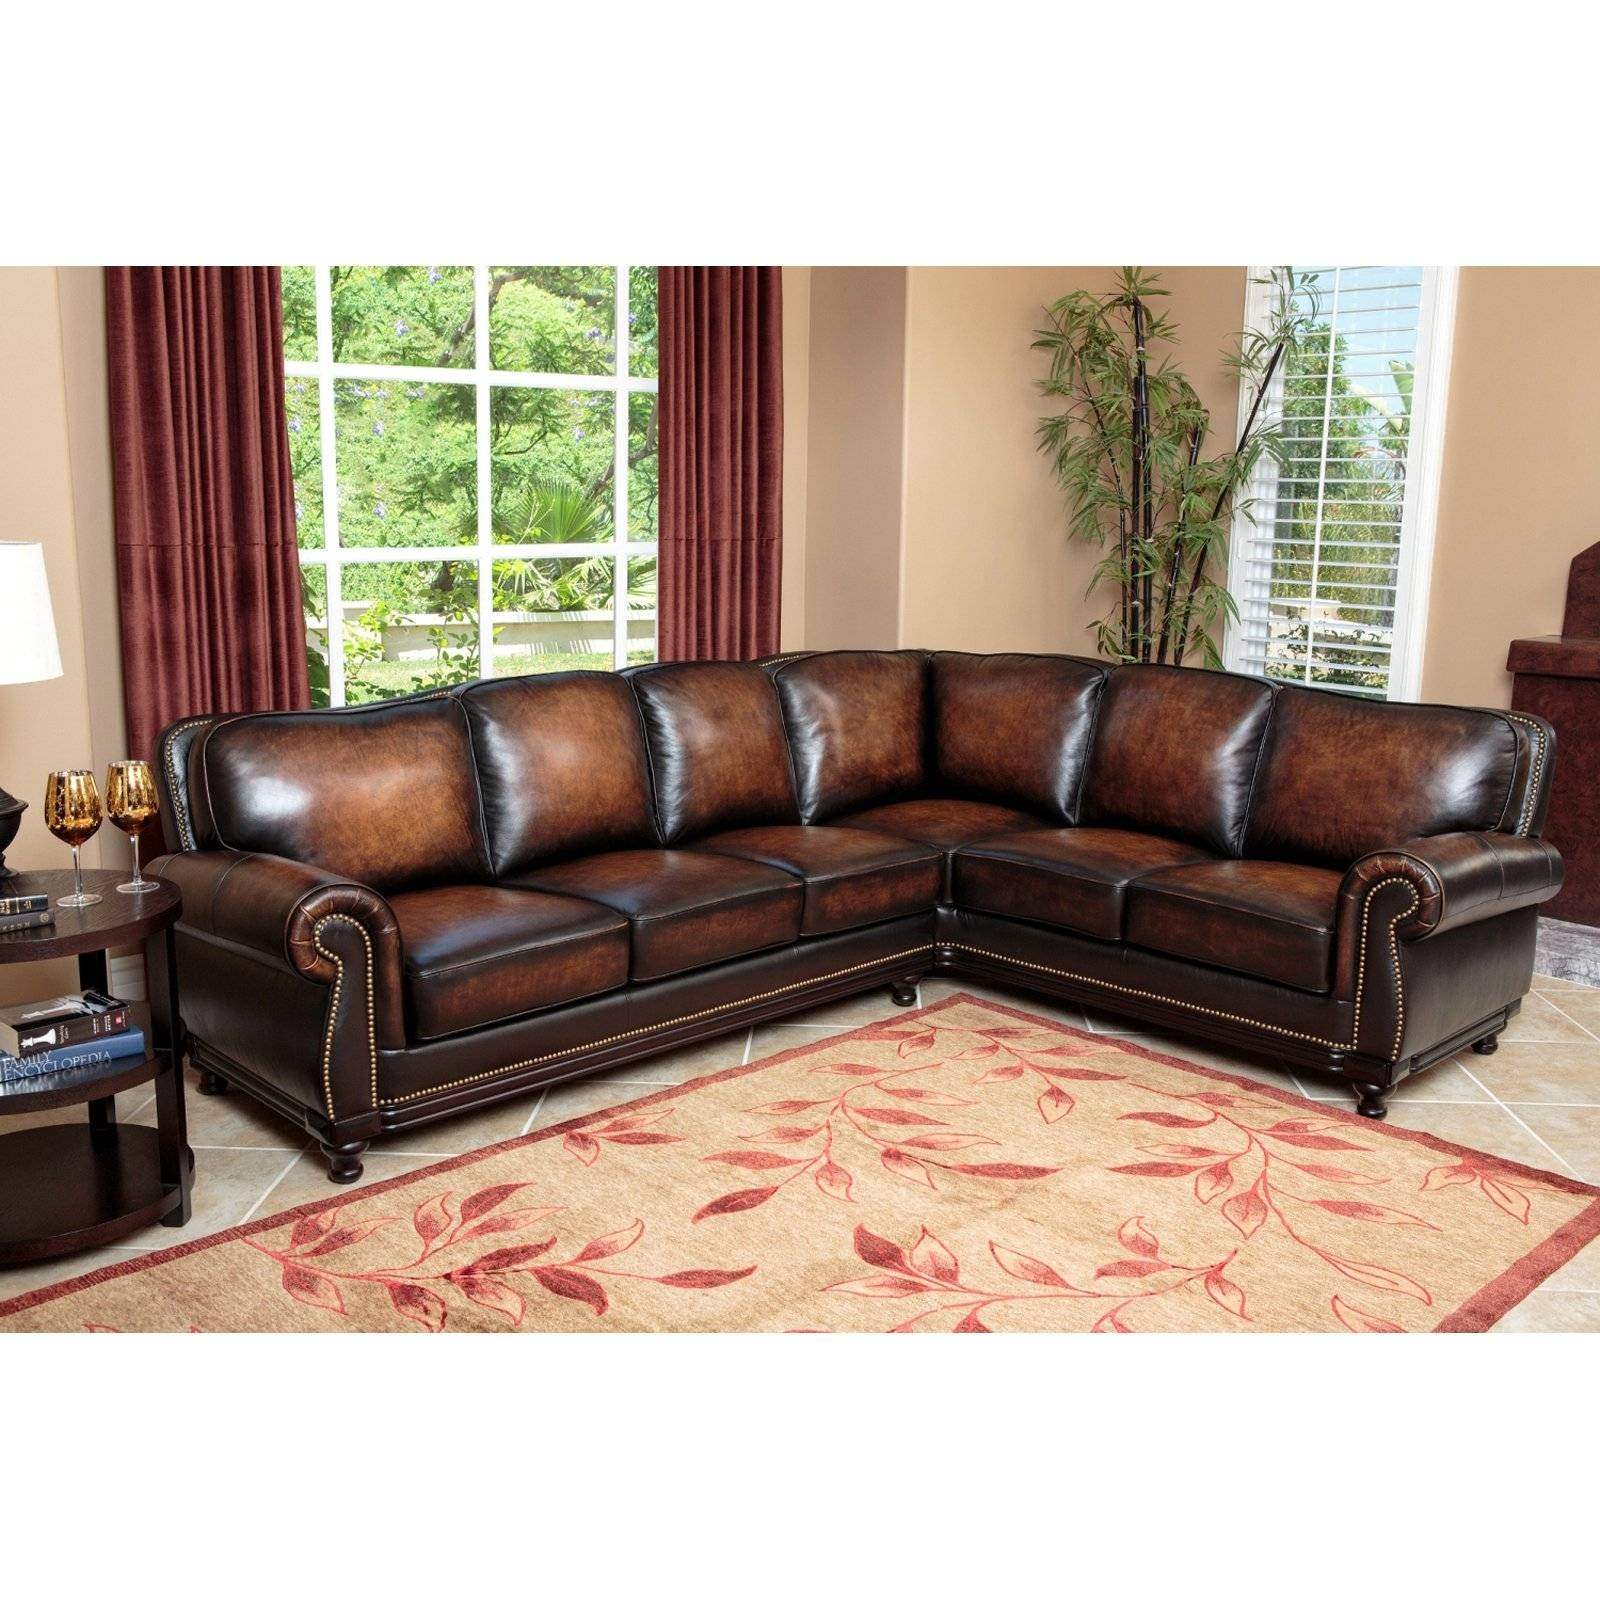 Abbyson Nizza Hand Rubbed Leather Sectional Sofa - Brown | Hayneedle inside Abbyson Living Sectional Sofas (Image 3 of 15)